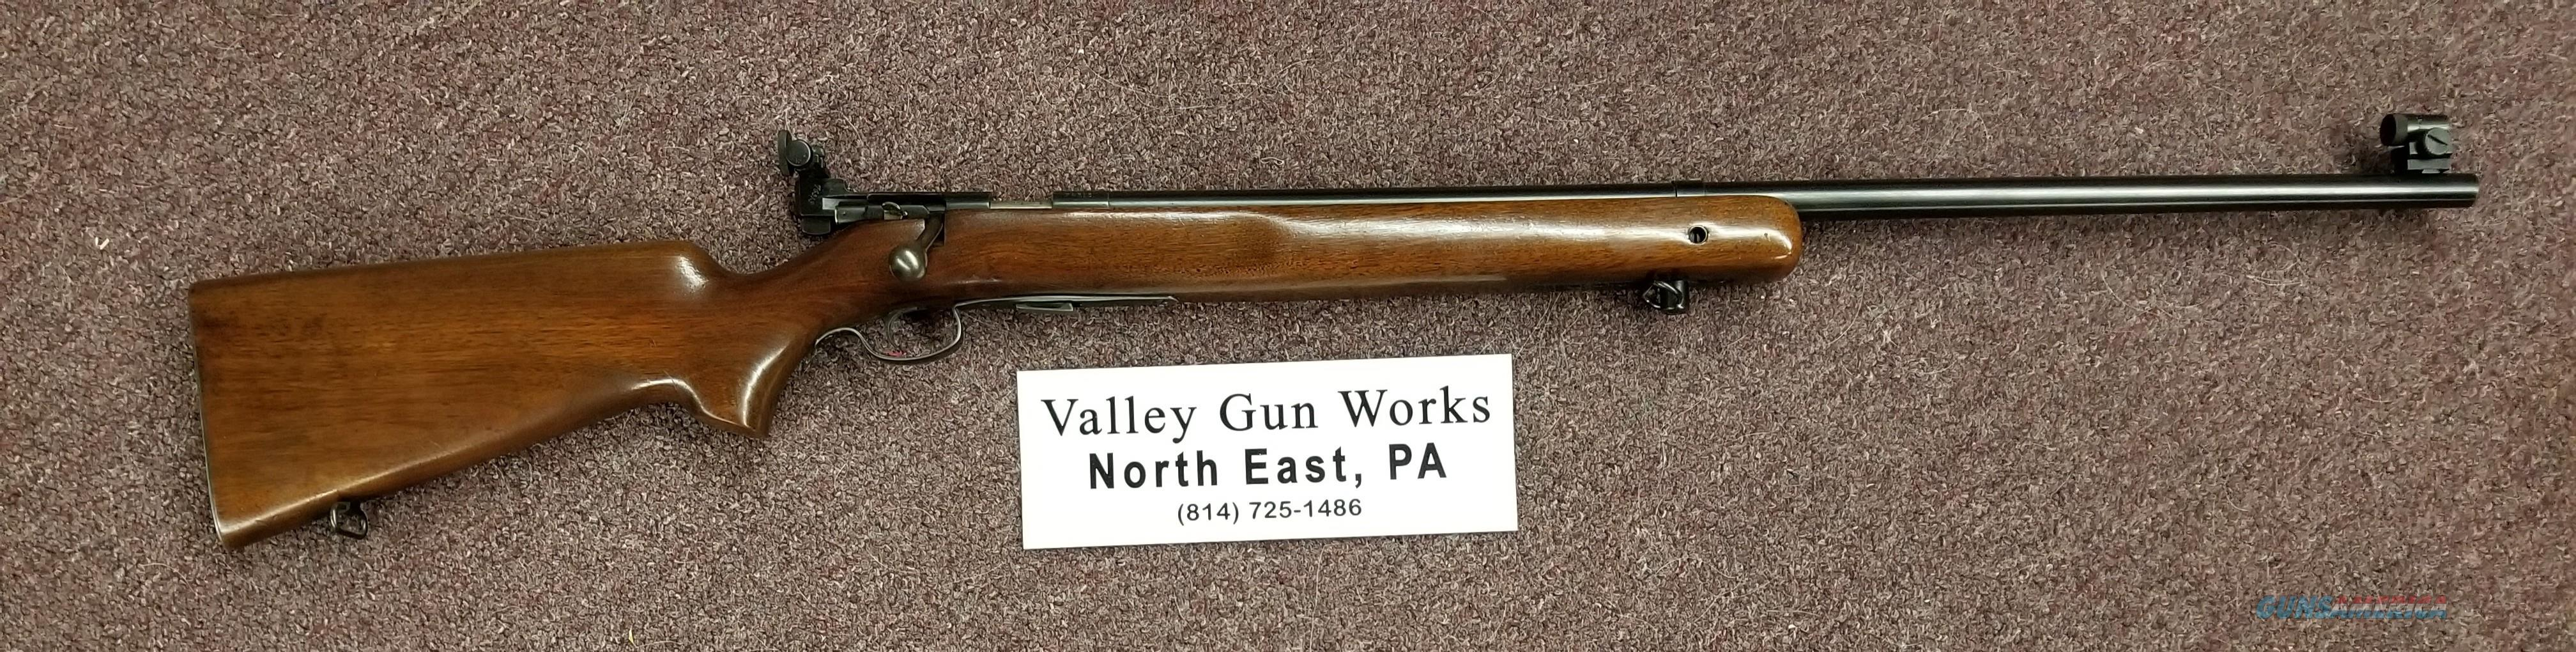 Winchester Model 75 Match Rifle - 22 LR - Free Shipping  Guns > Rifles > Winchester Rifles - Modern Bolt/Auto/Single > Other Bolt Action